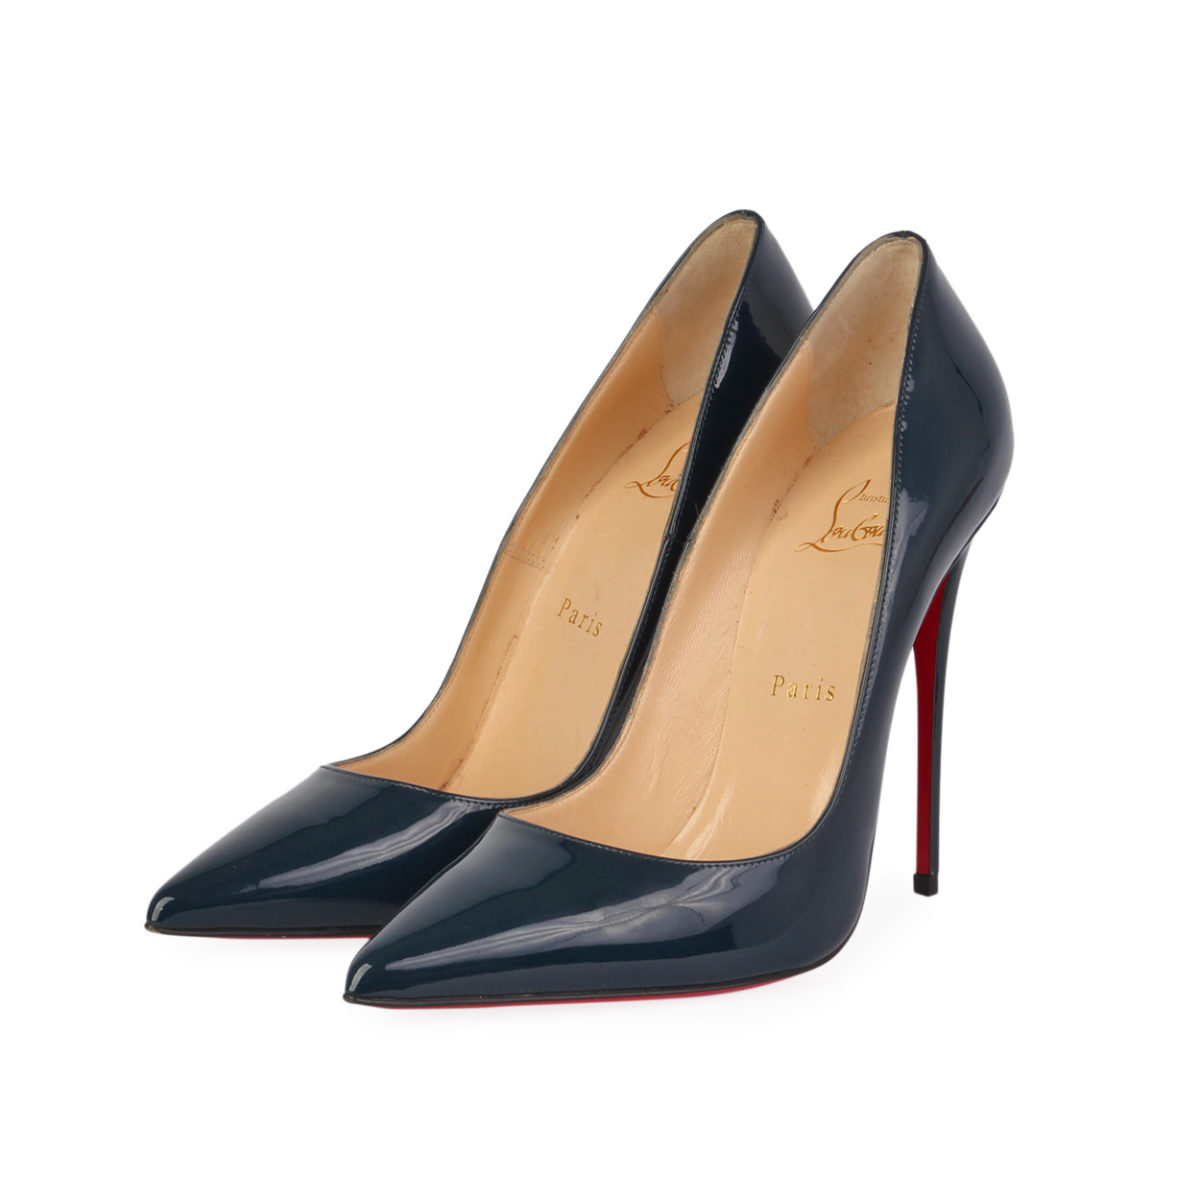 best sneakers c5b00 c8bf4 CHRISTIAN LOUBOUTIN Patent Leather So Kate Pumps Navy - S: 38.5 (5.5)